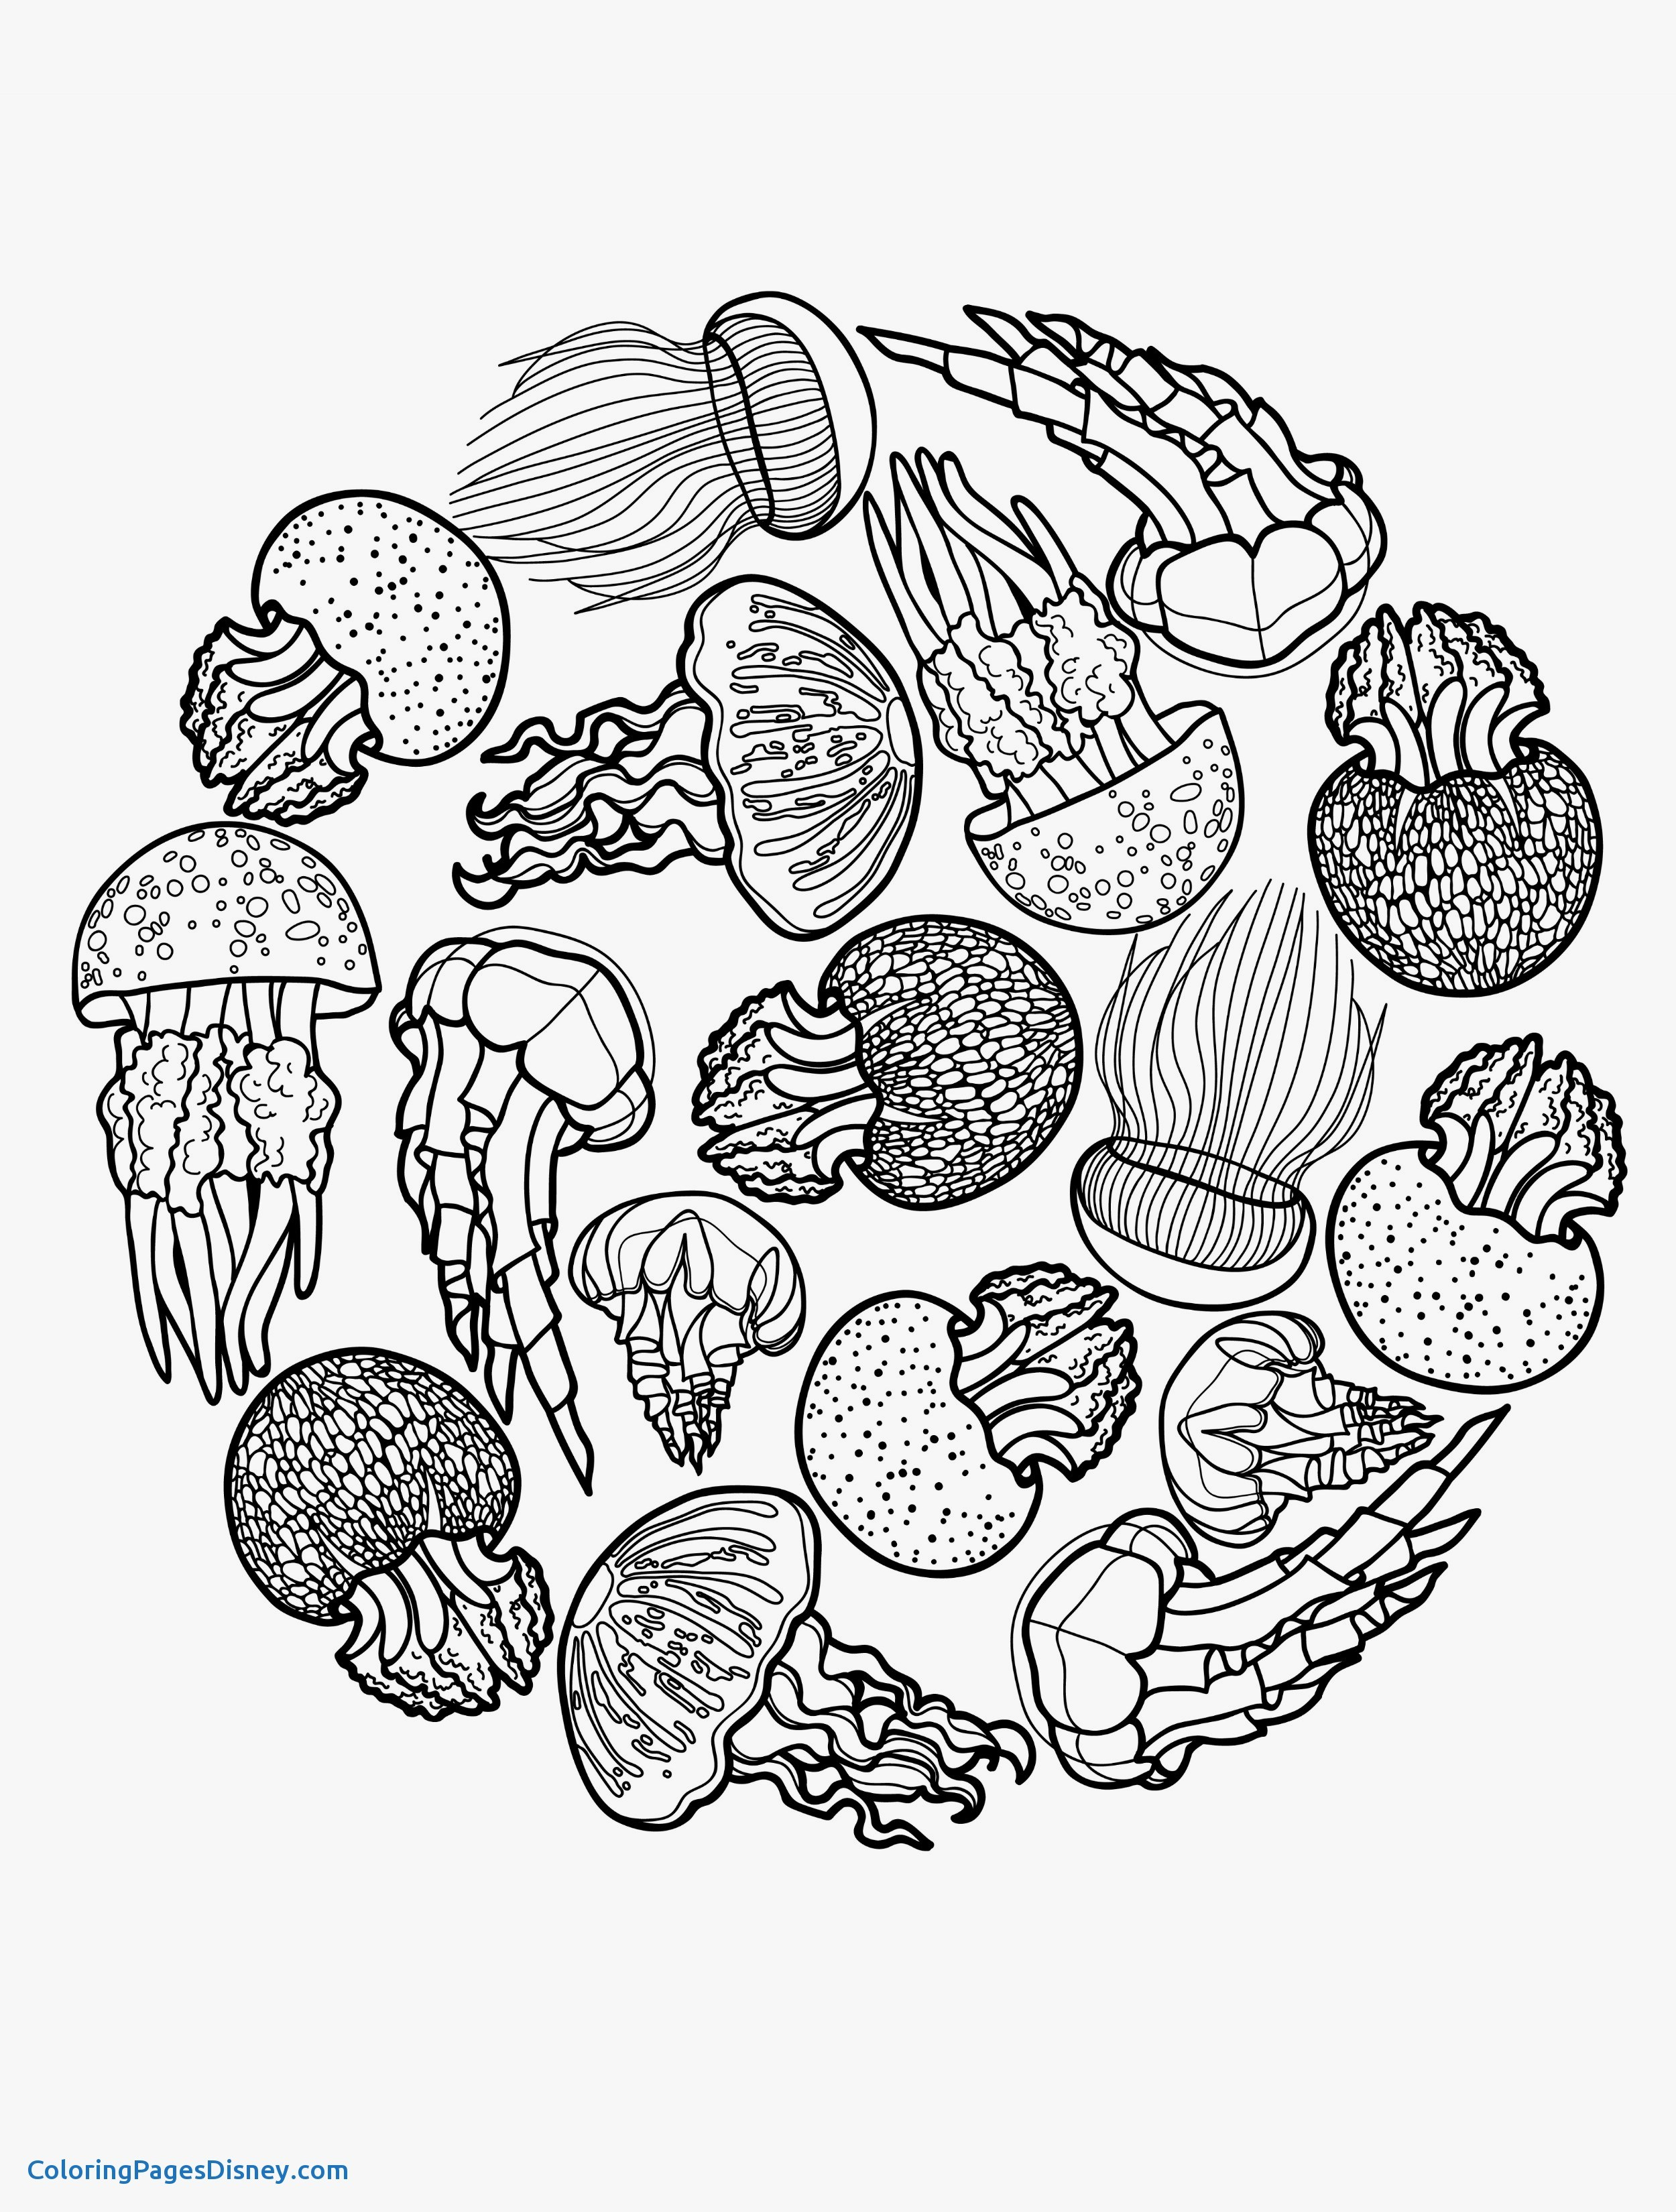 Cute Jellyfish Coloring Pages At Getdrawings Com Free For Personal